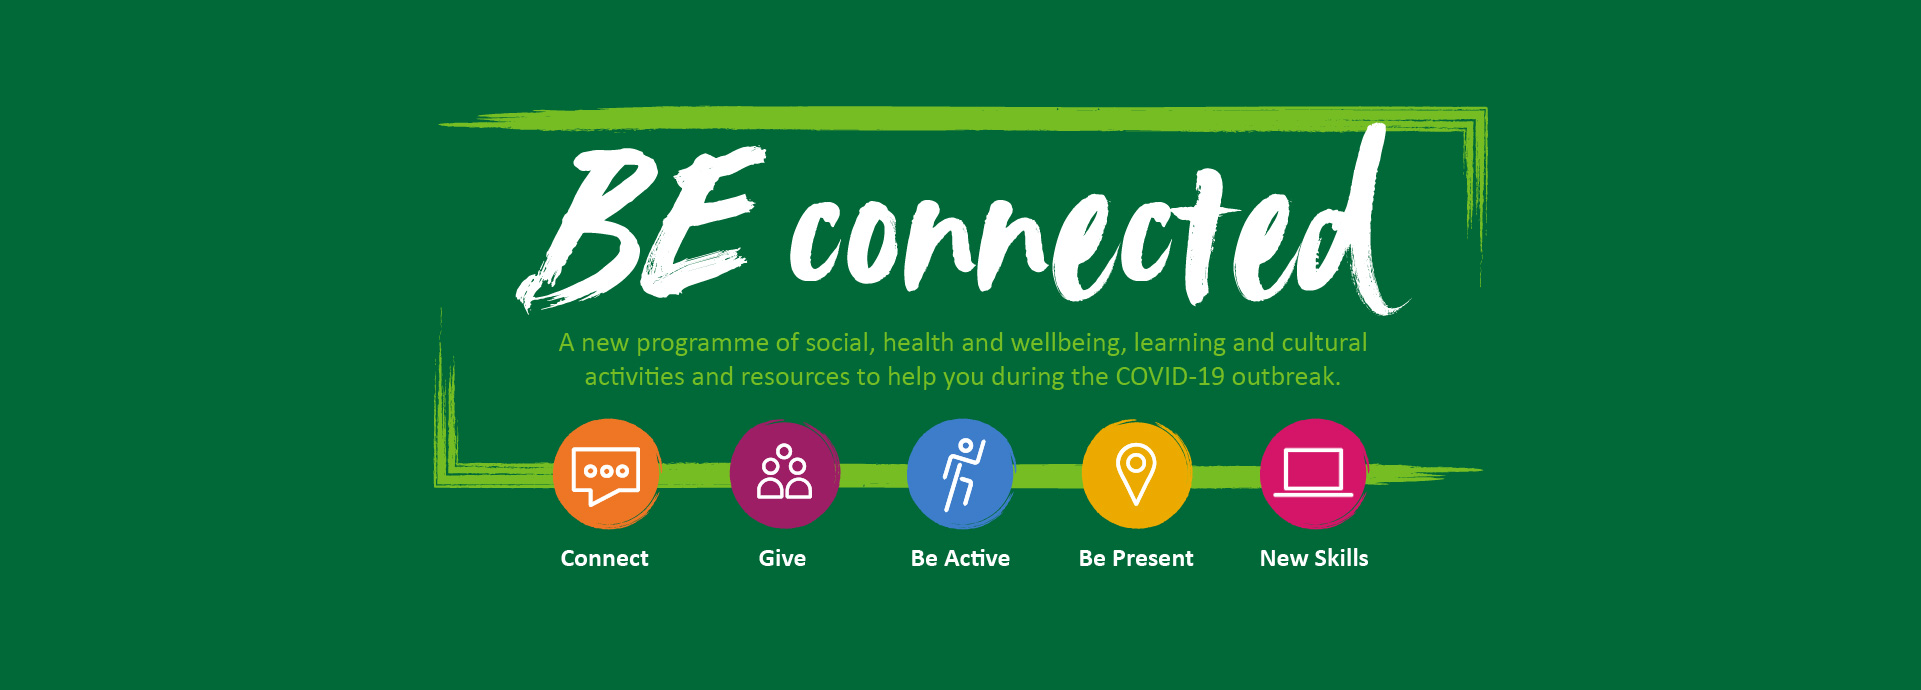 Be Connected logo banner